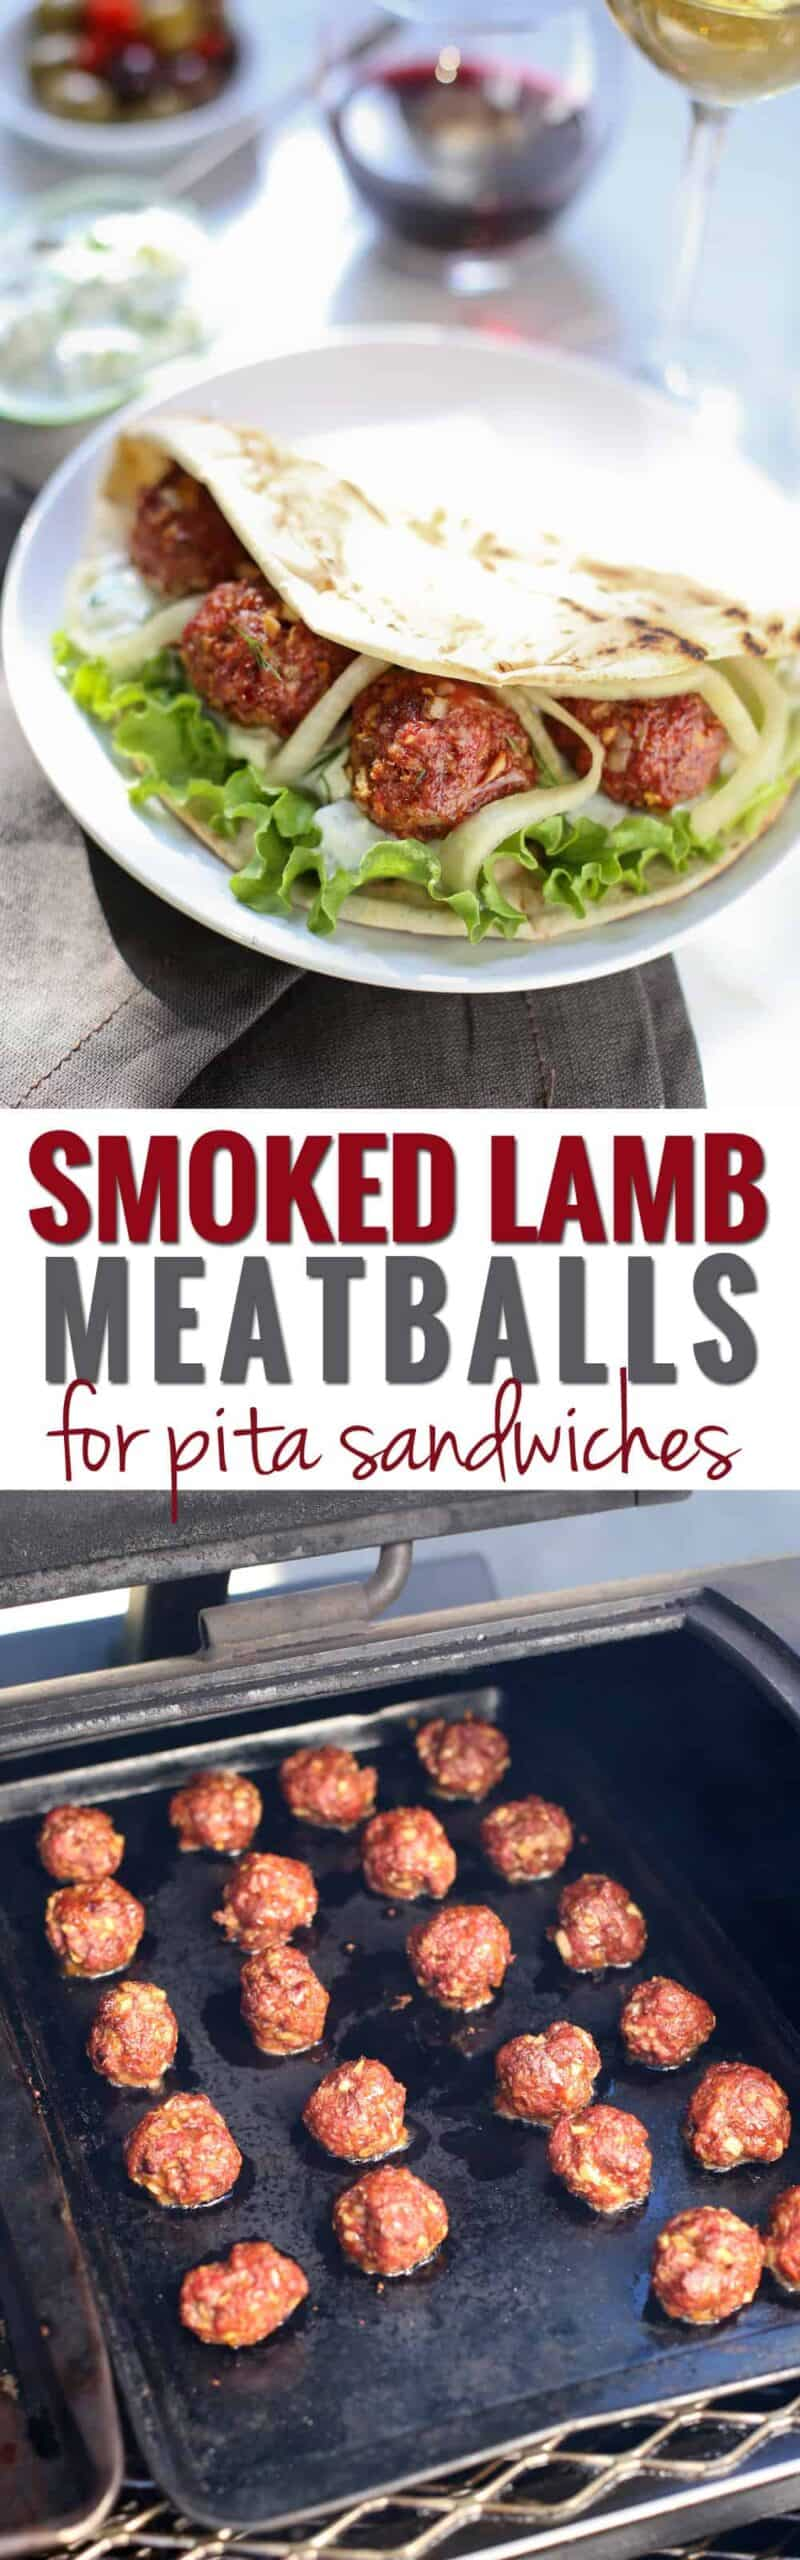 Smoked Lamb Meatballs pin for pinterest